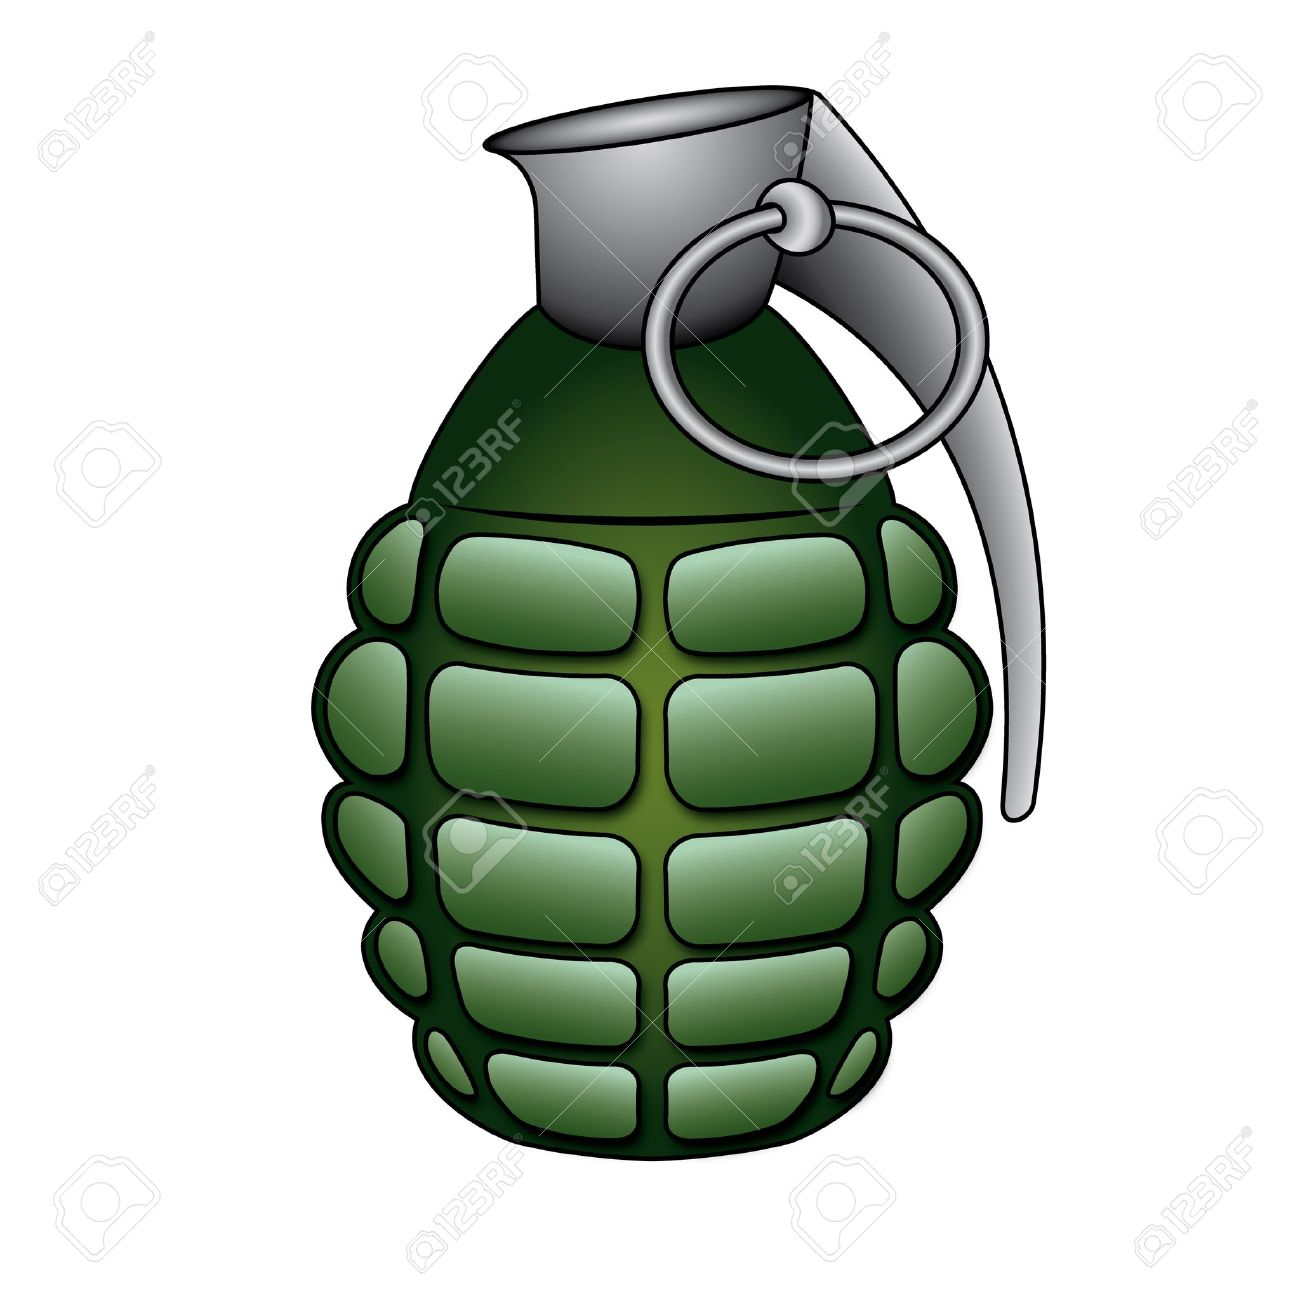 Bomb clipart ordinance. Grenade affordable carb killa